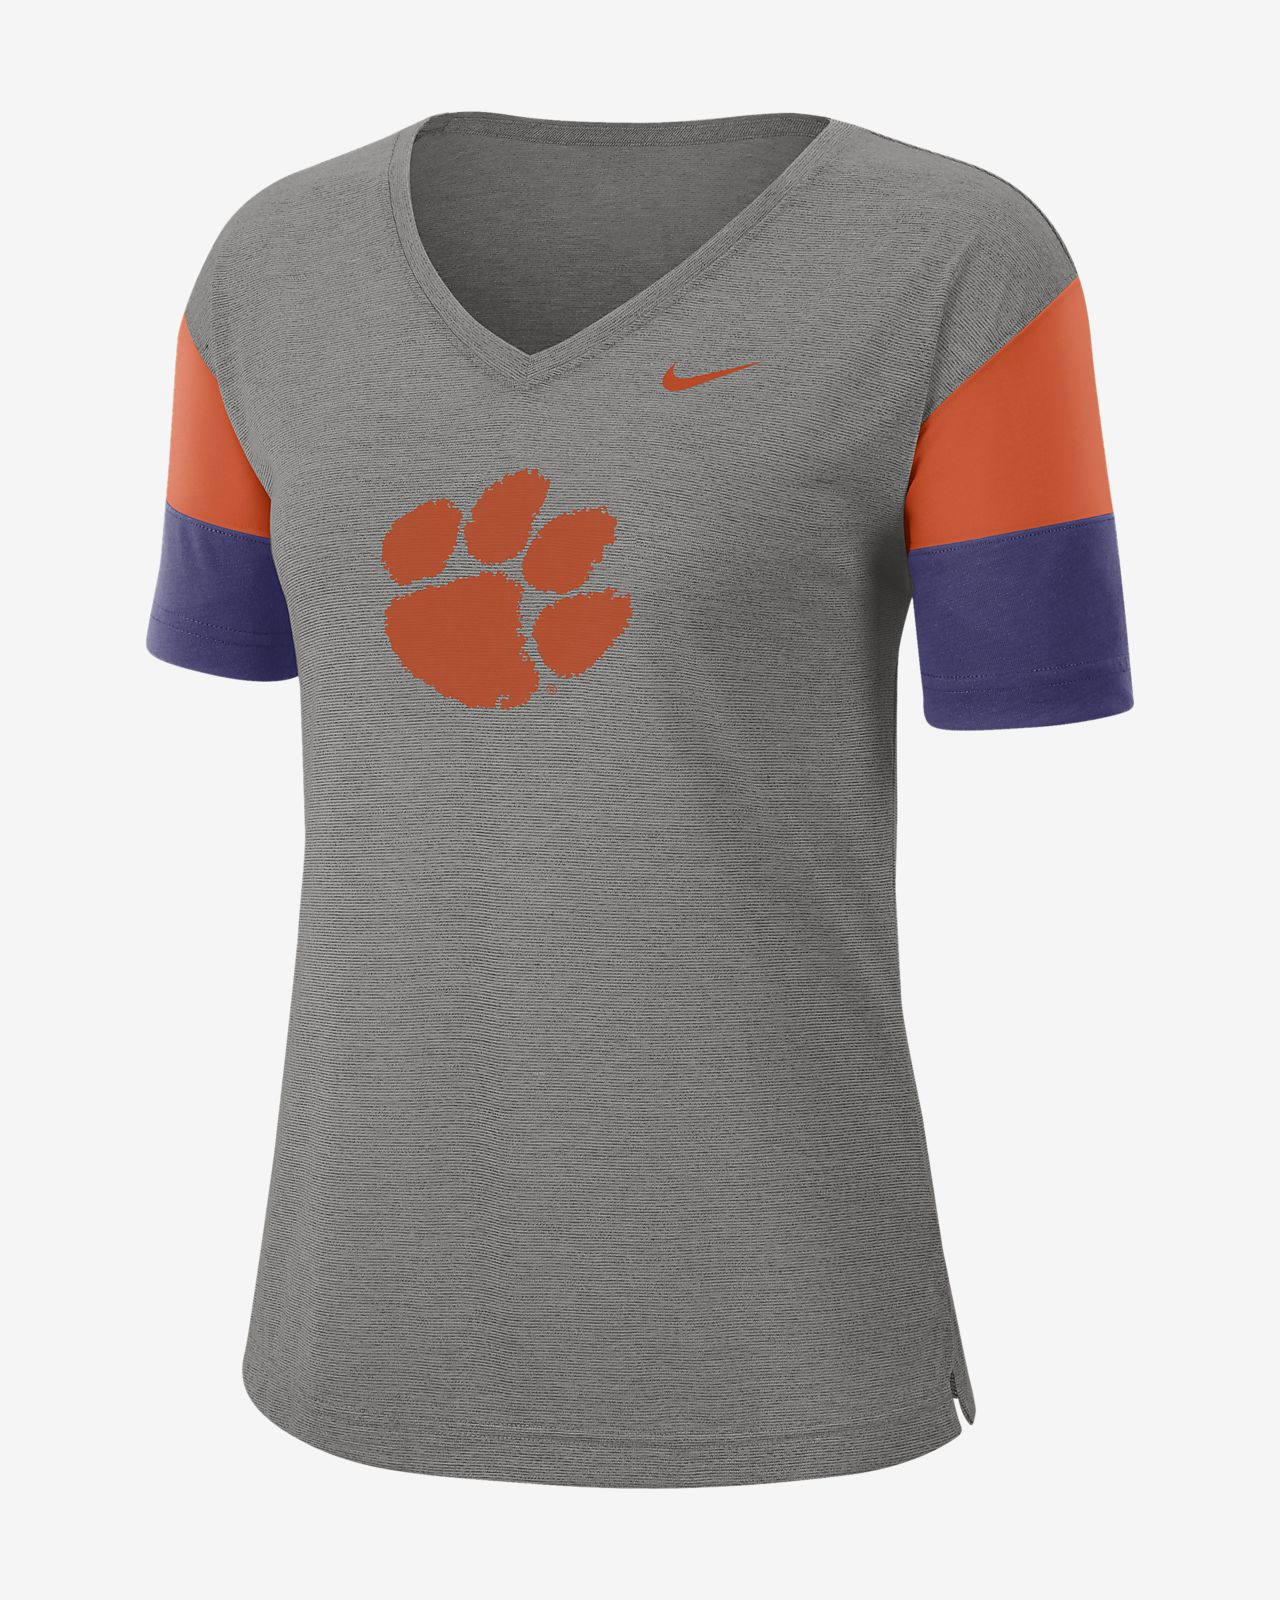 Nike College Breathe (Clemson) Women's Short-Sleeve V-Neck Top